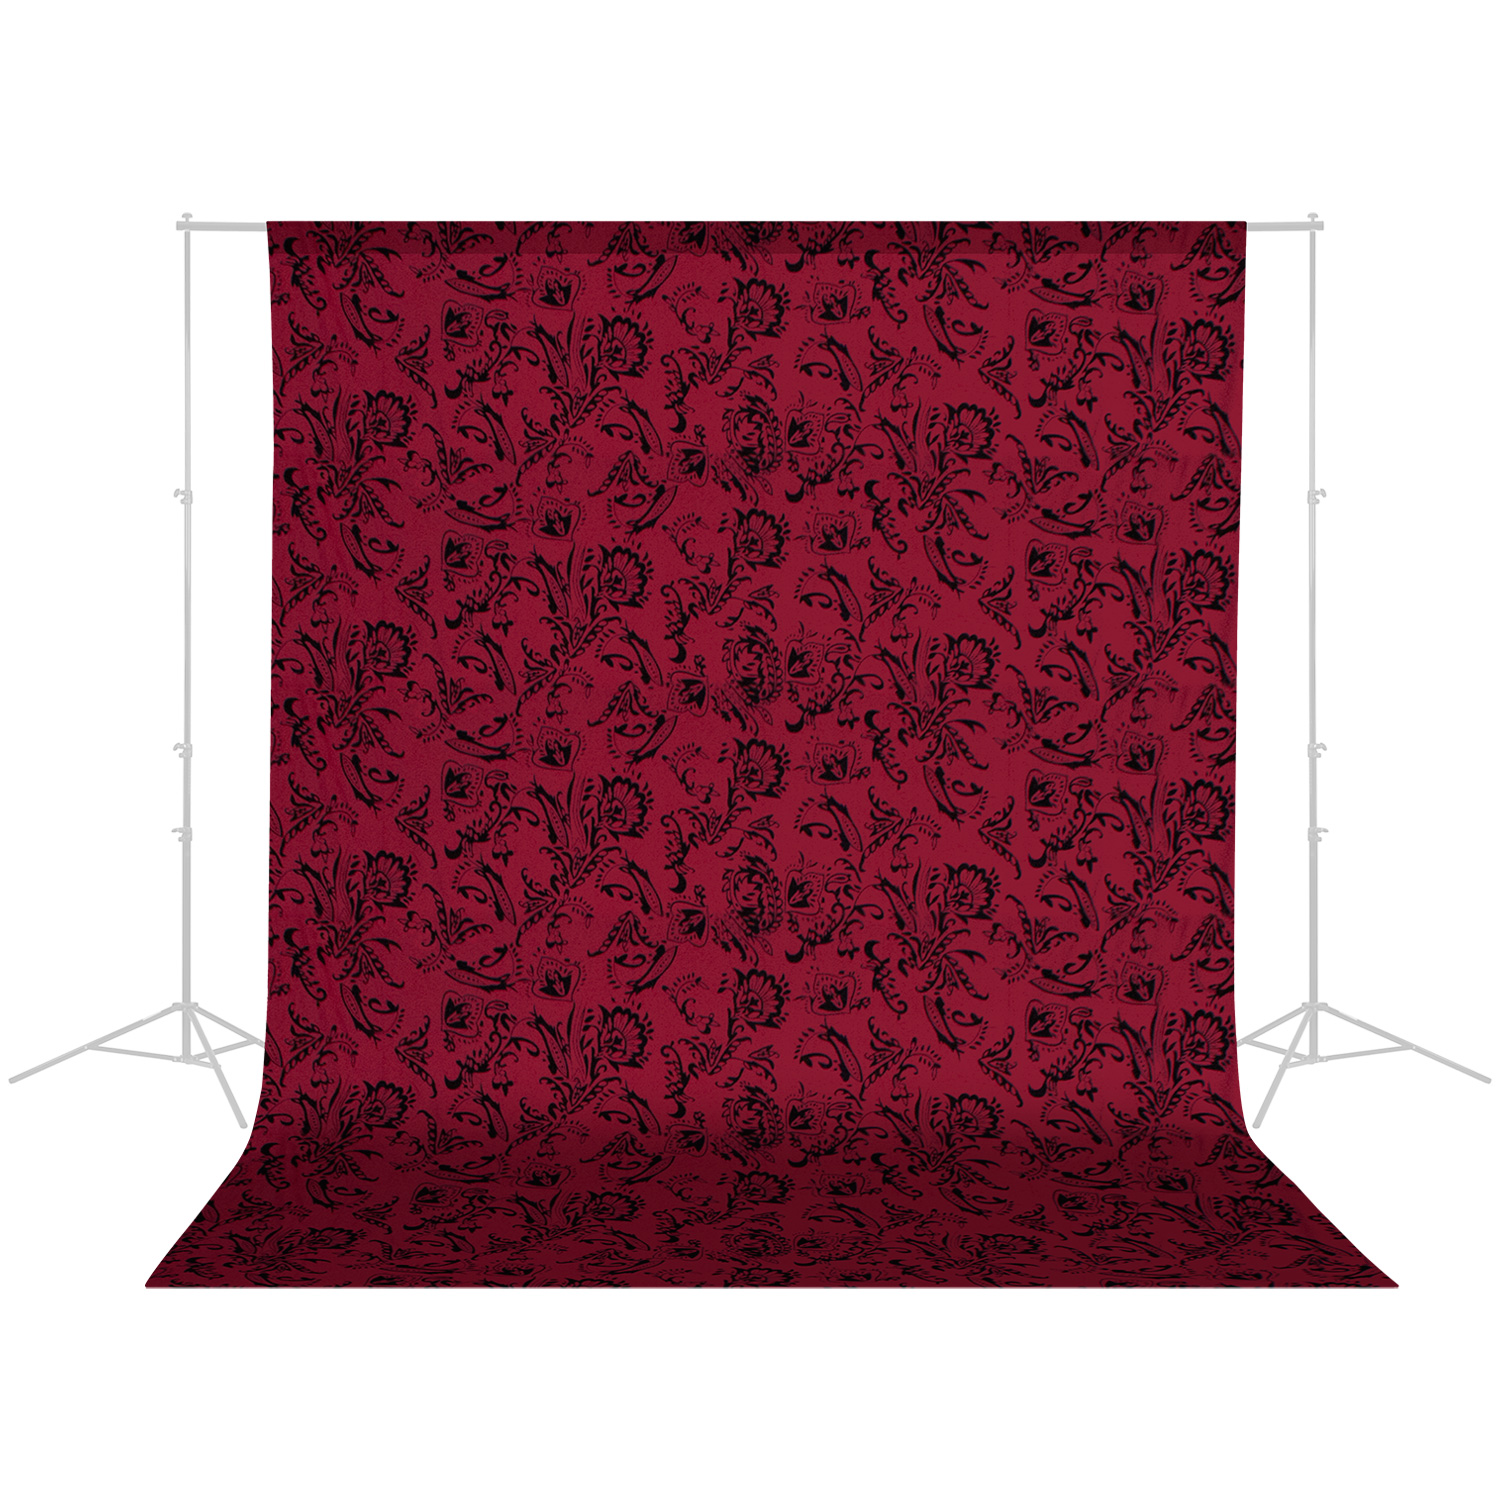 9' x 12' Ornate Modern Vintage Backdrop